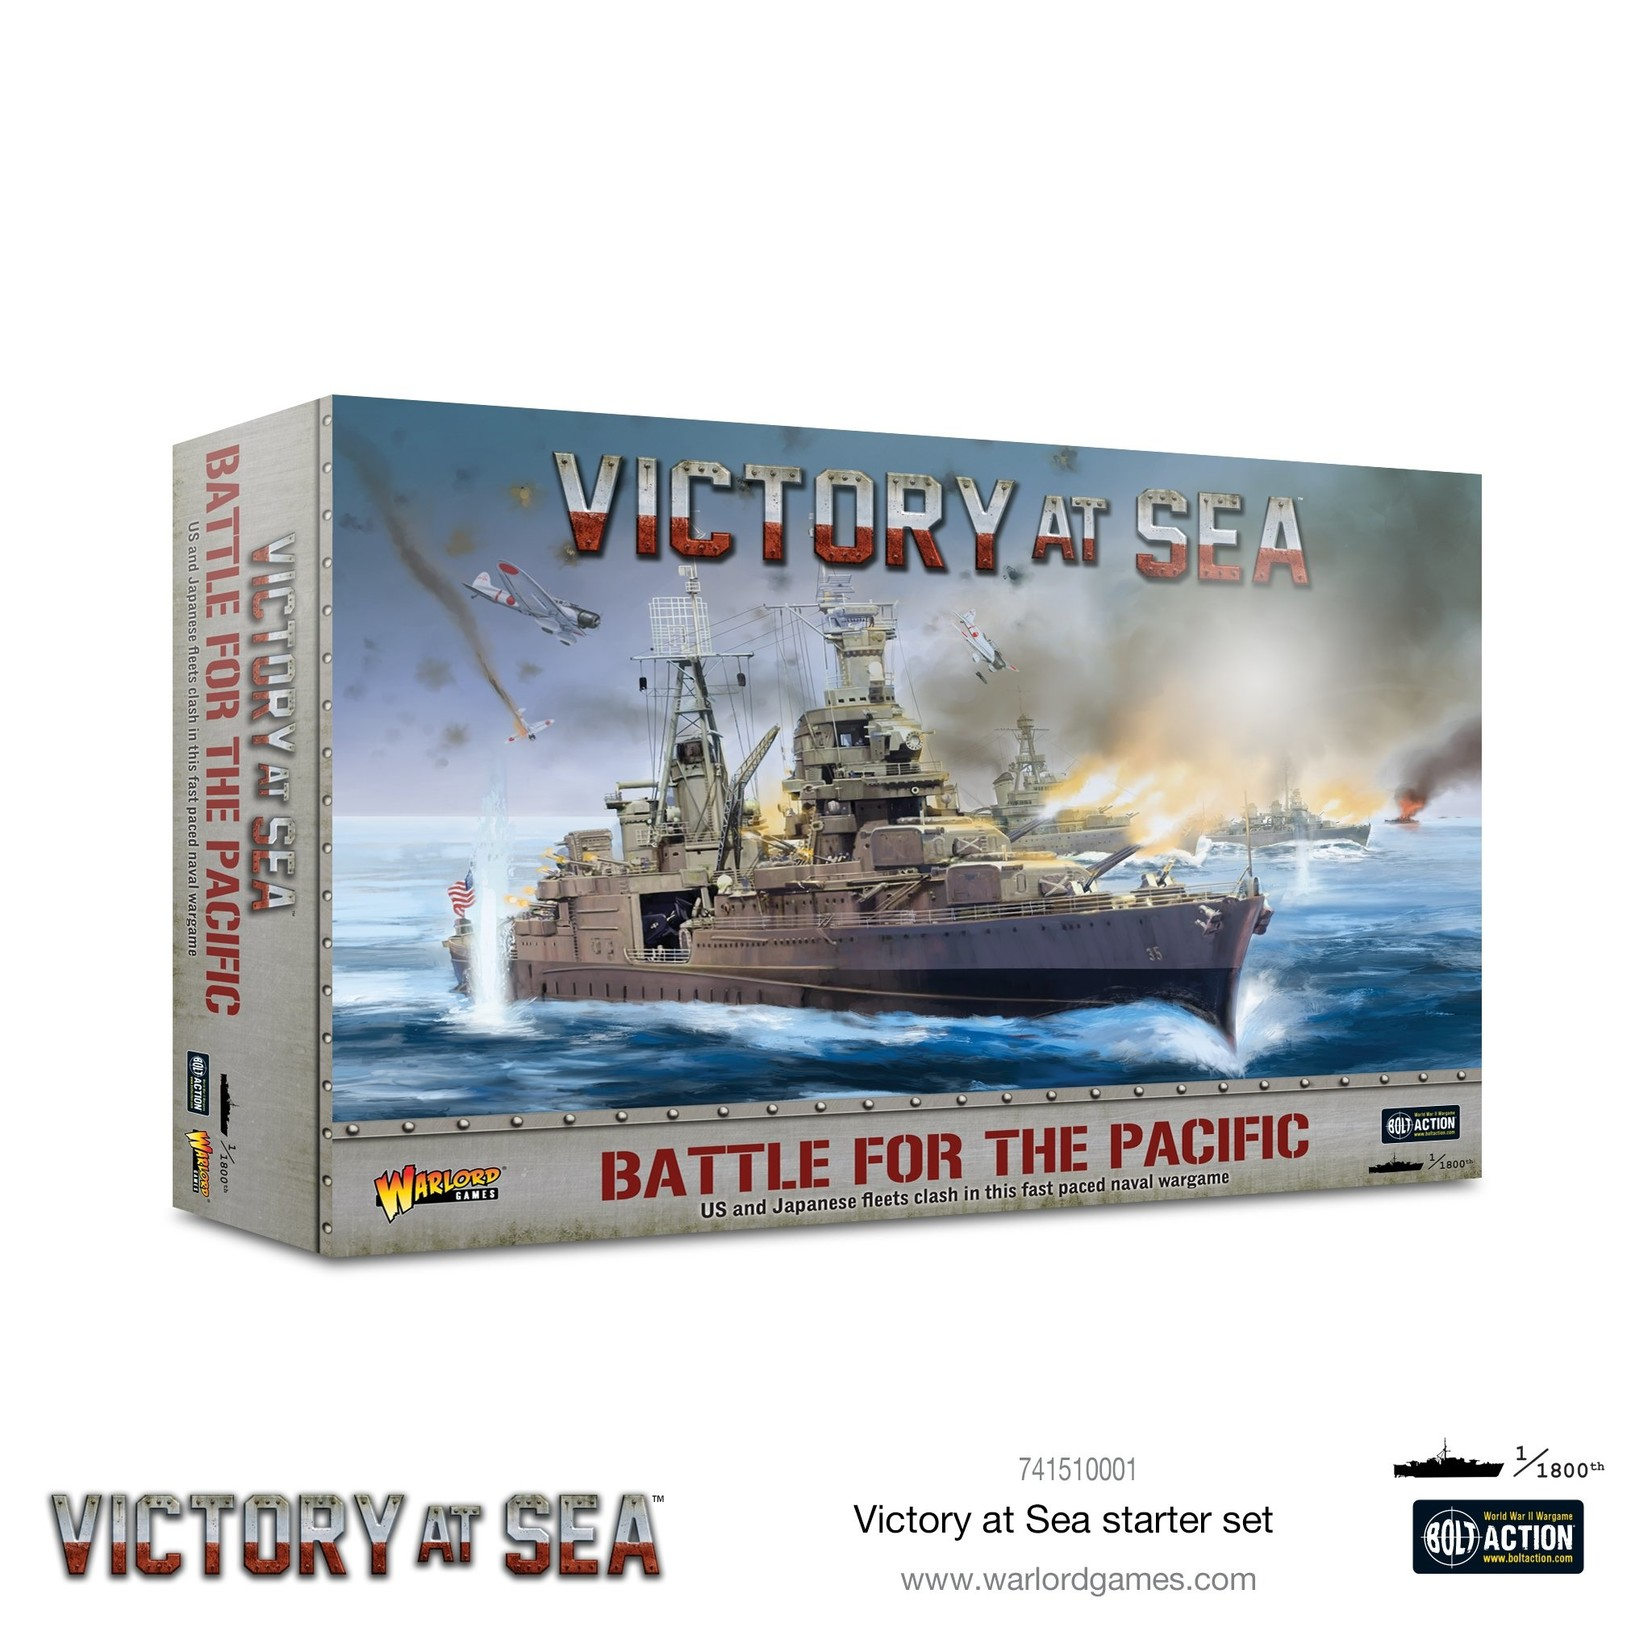 Warlord Games Battle for the Pacific - Victory at Sea starter game